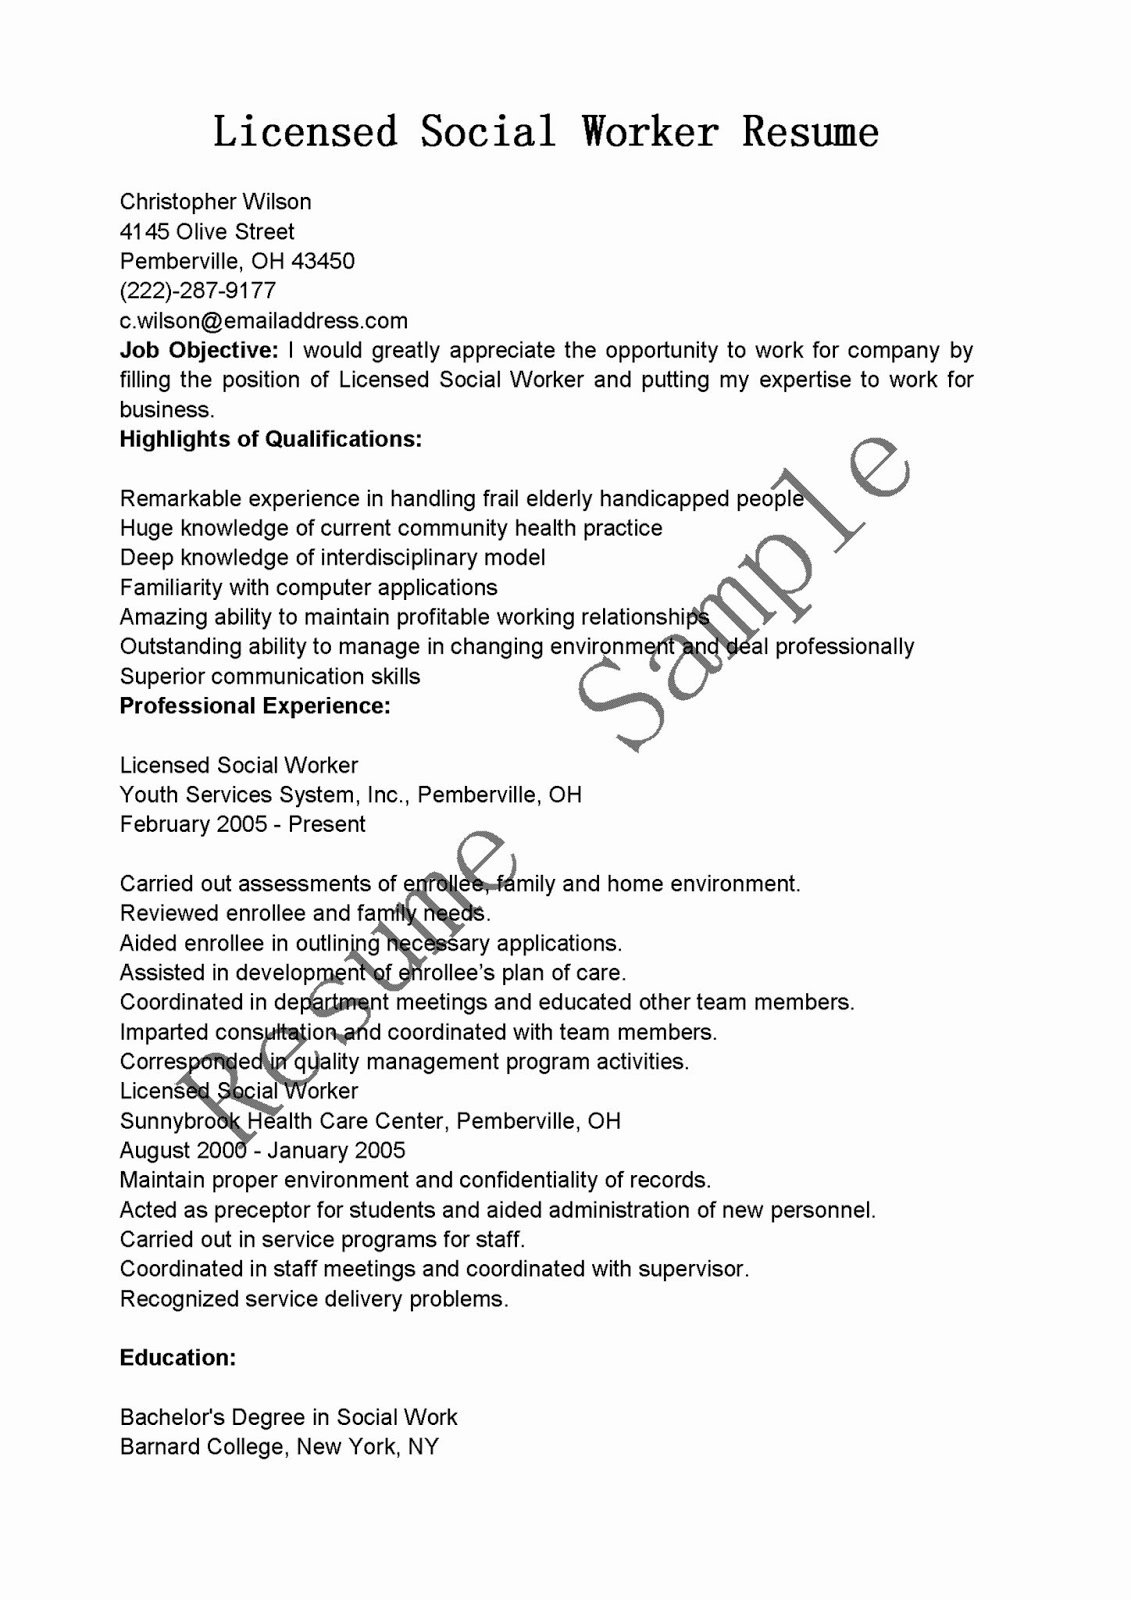 Resume Samples Licensed social Worker Resume Sample